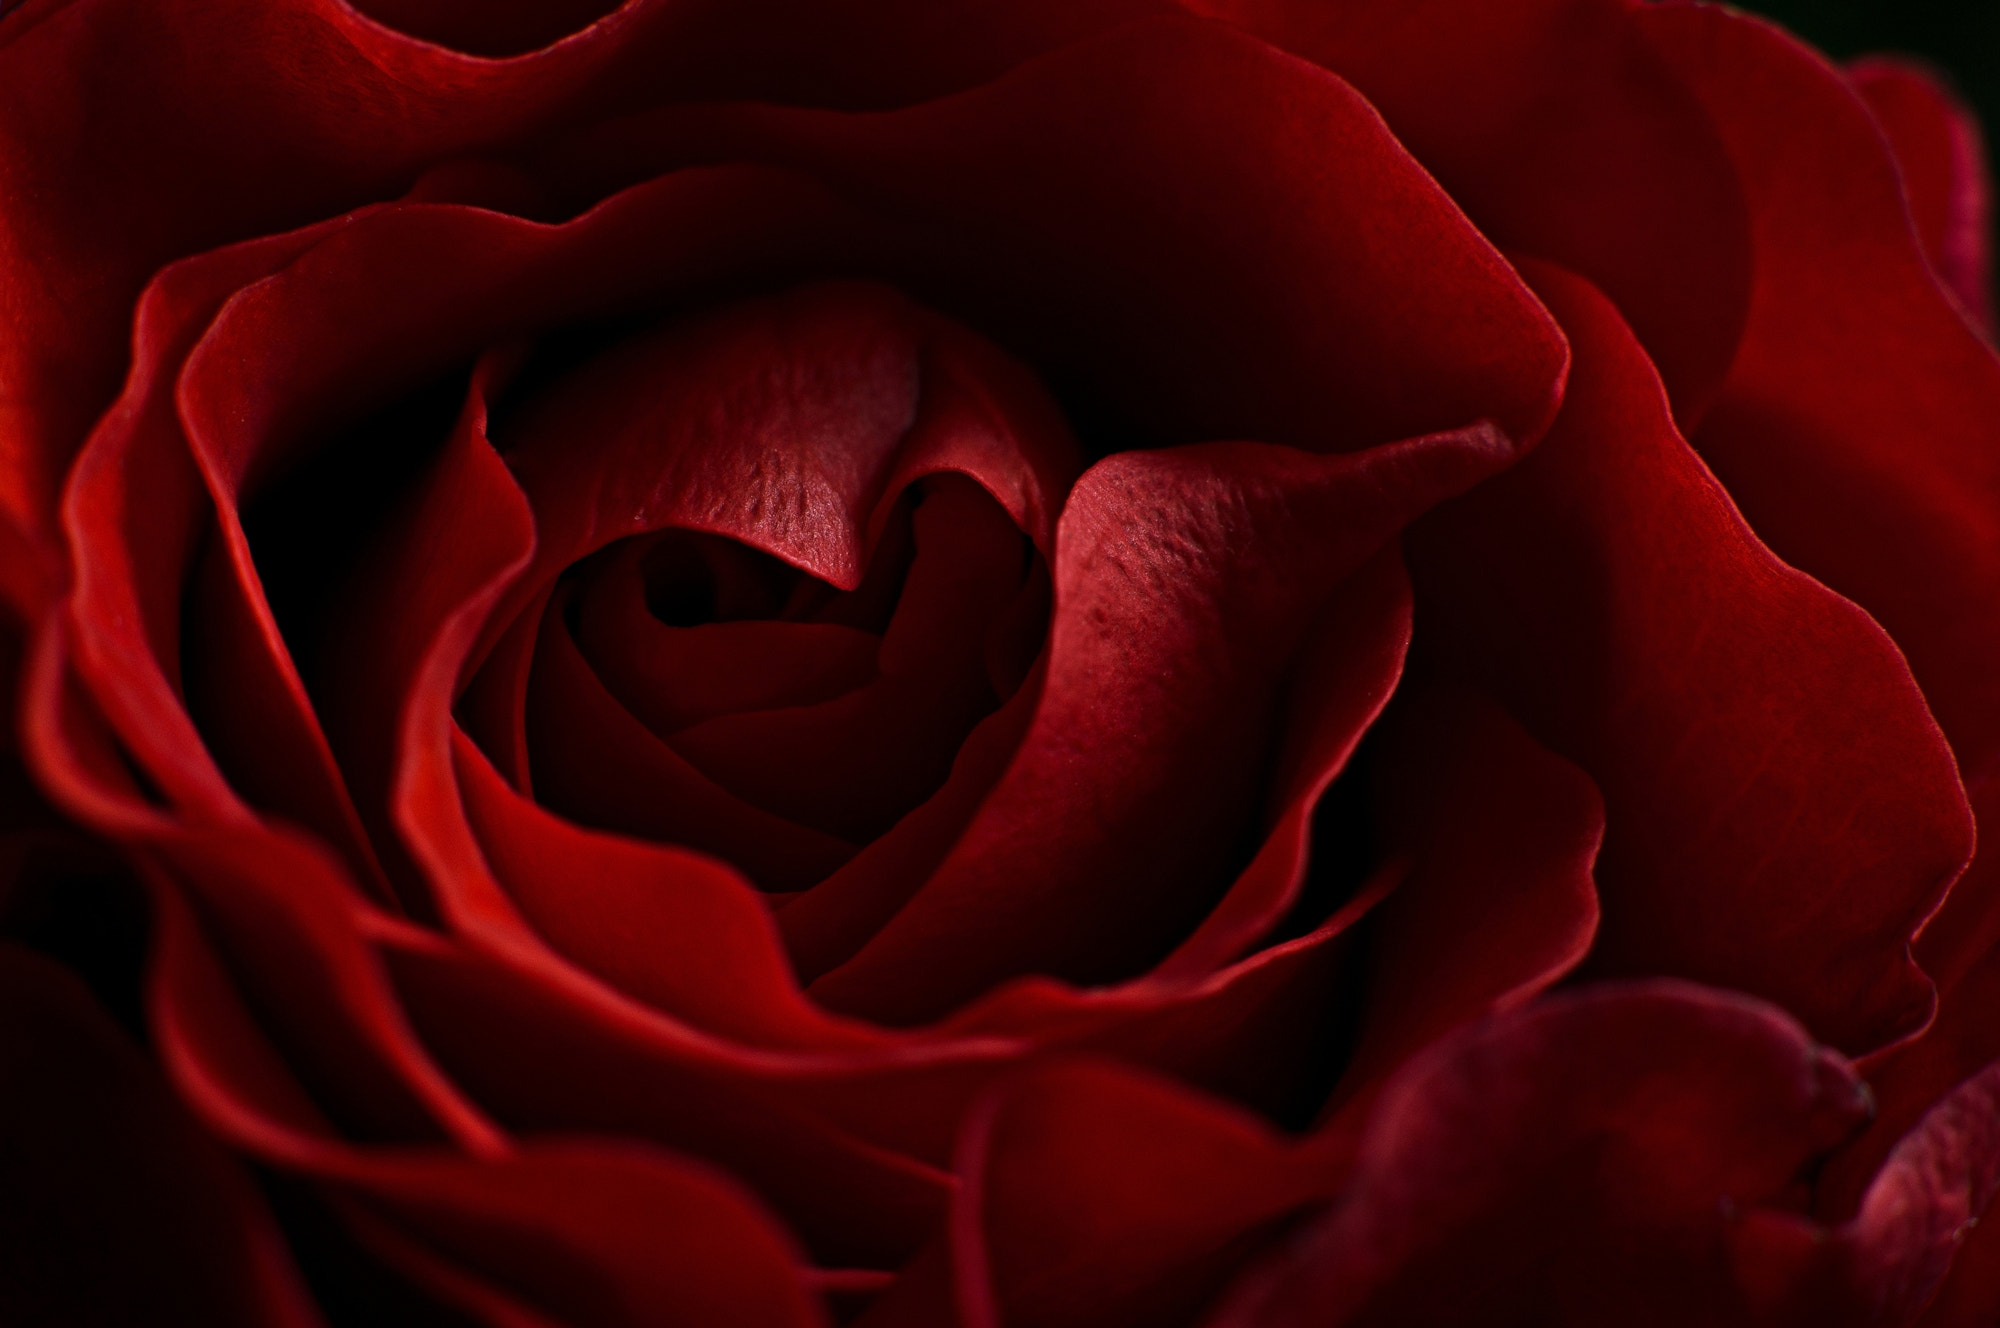 Photograph Rose is a rose by Vanessa Viki on 500px